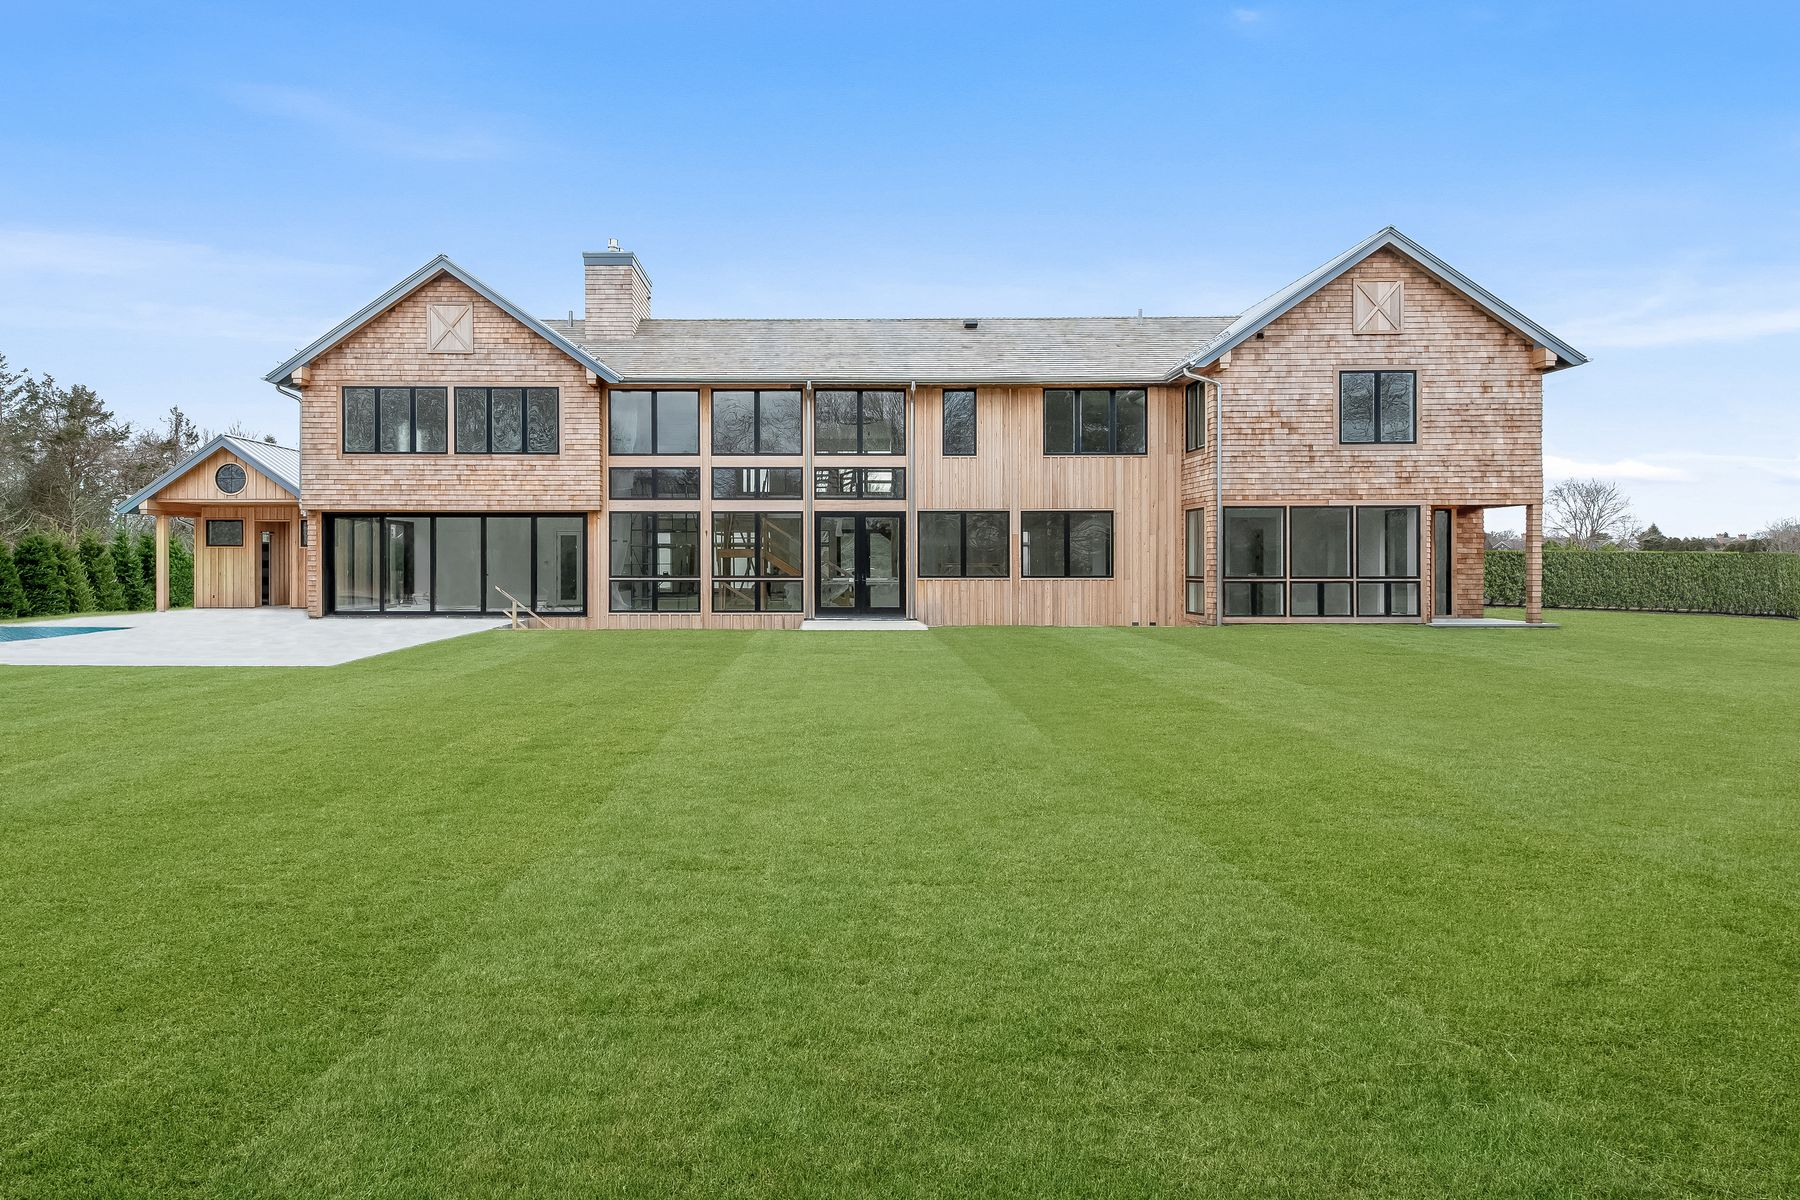 Single Family Home for Active at GORGEOUS NEW SOUTH-OF THE-HIGHWAY MODERN 90 Wild Goose Lane Water Mill, New York 11976 United States